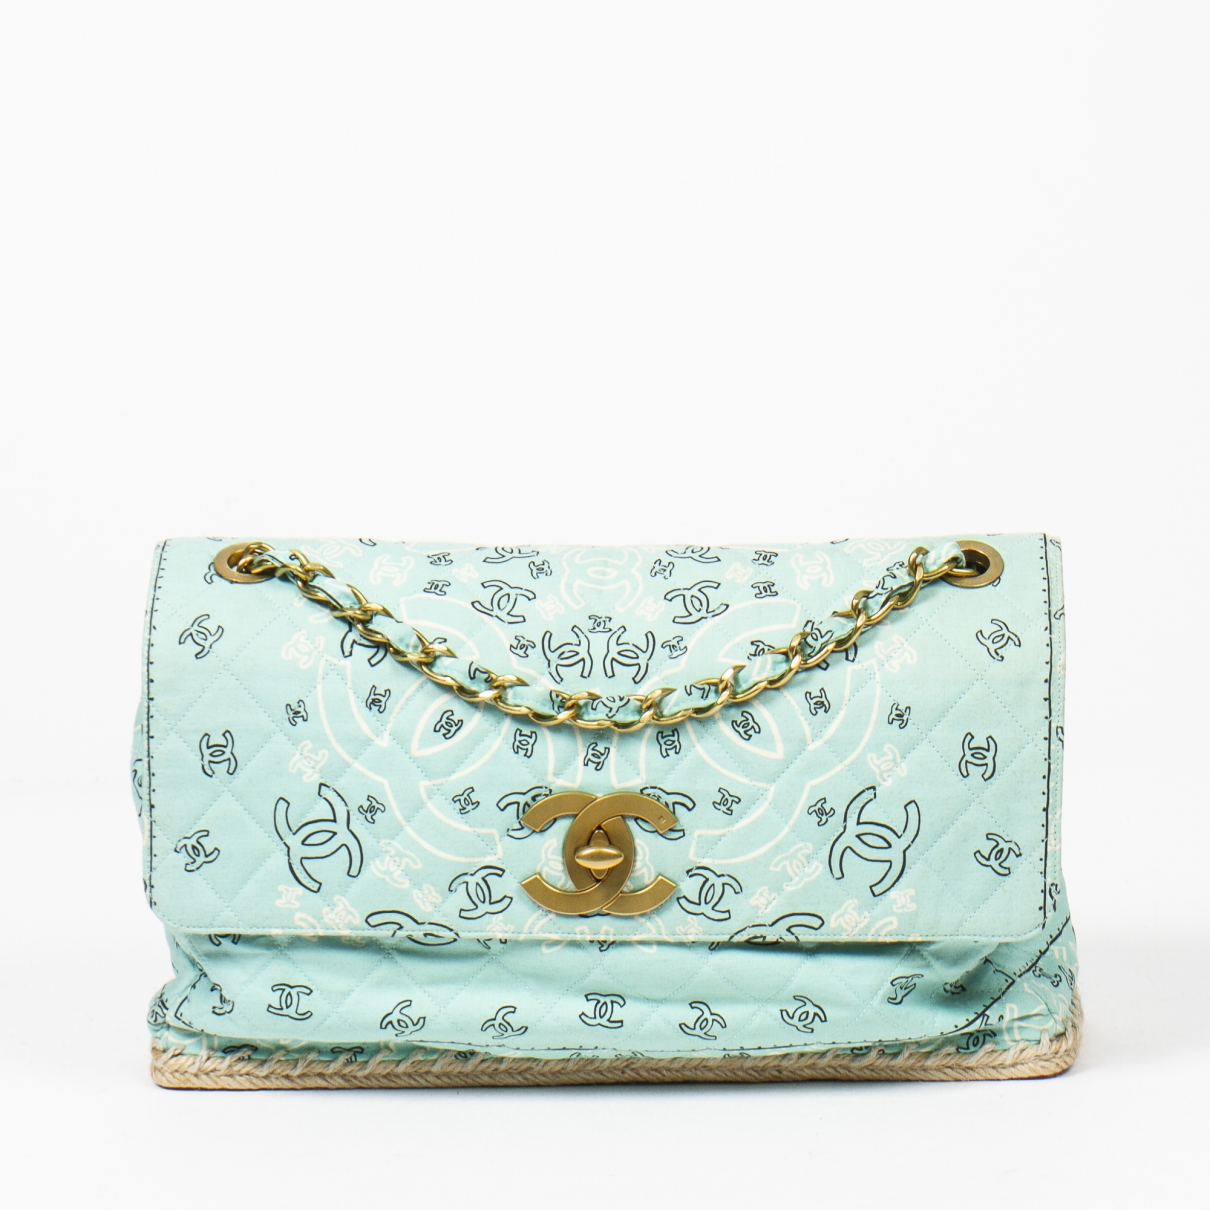 Chanel \N Green Leather handbag for Women \N